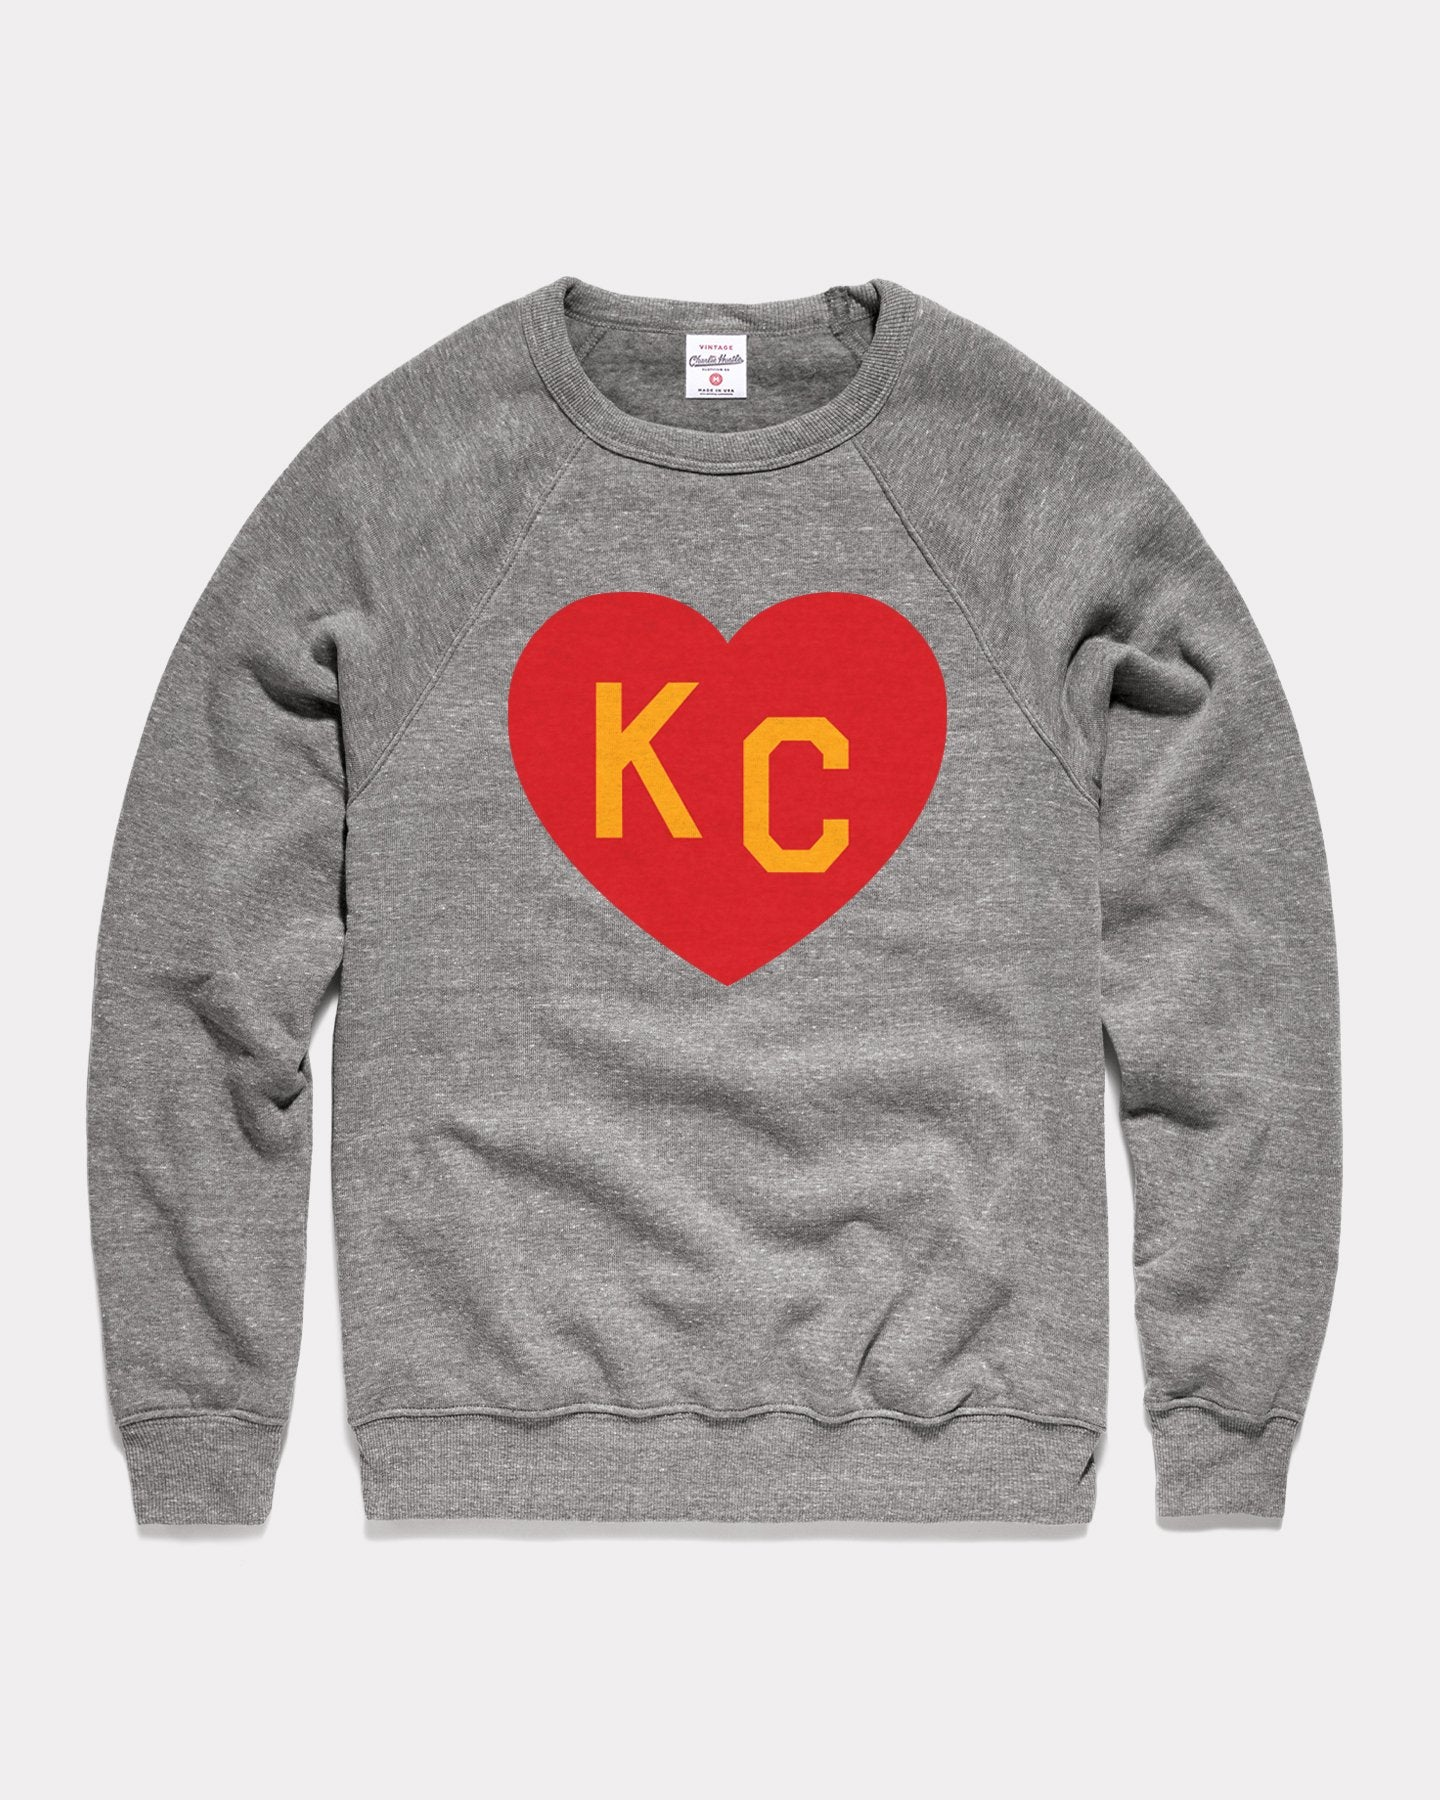 Grey & Red Arrowhead Kingdom KC Heart Vintage Crewneck Sweatshirt